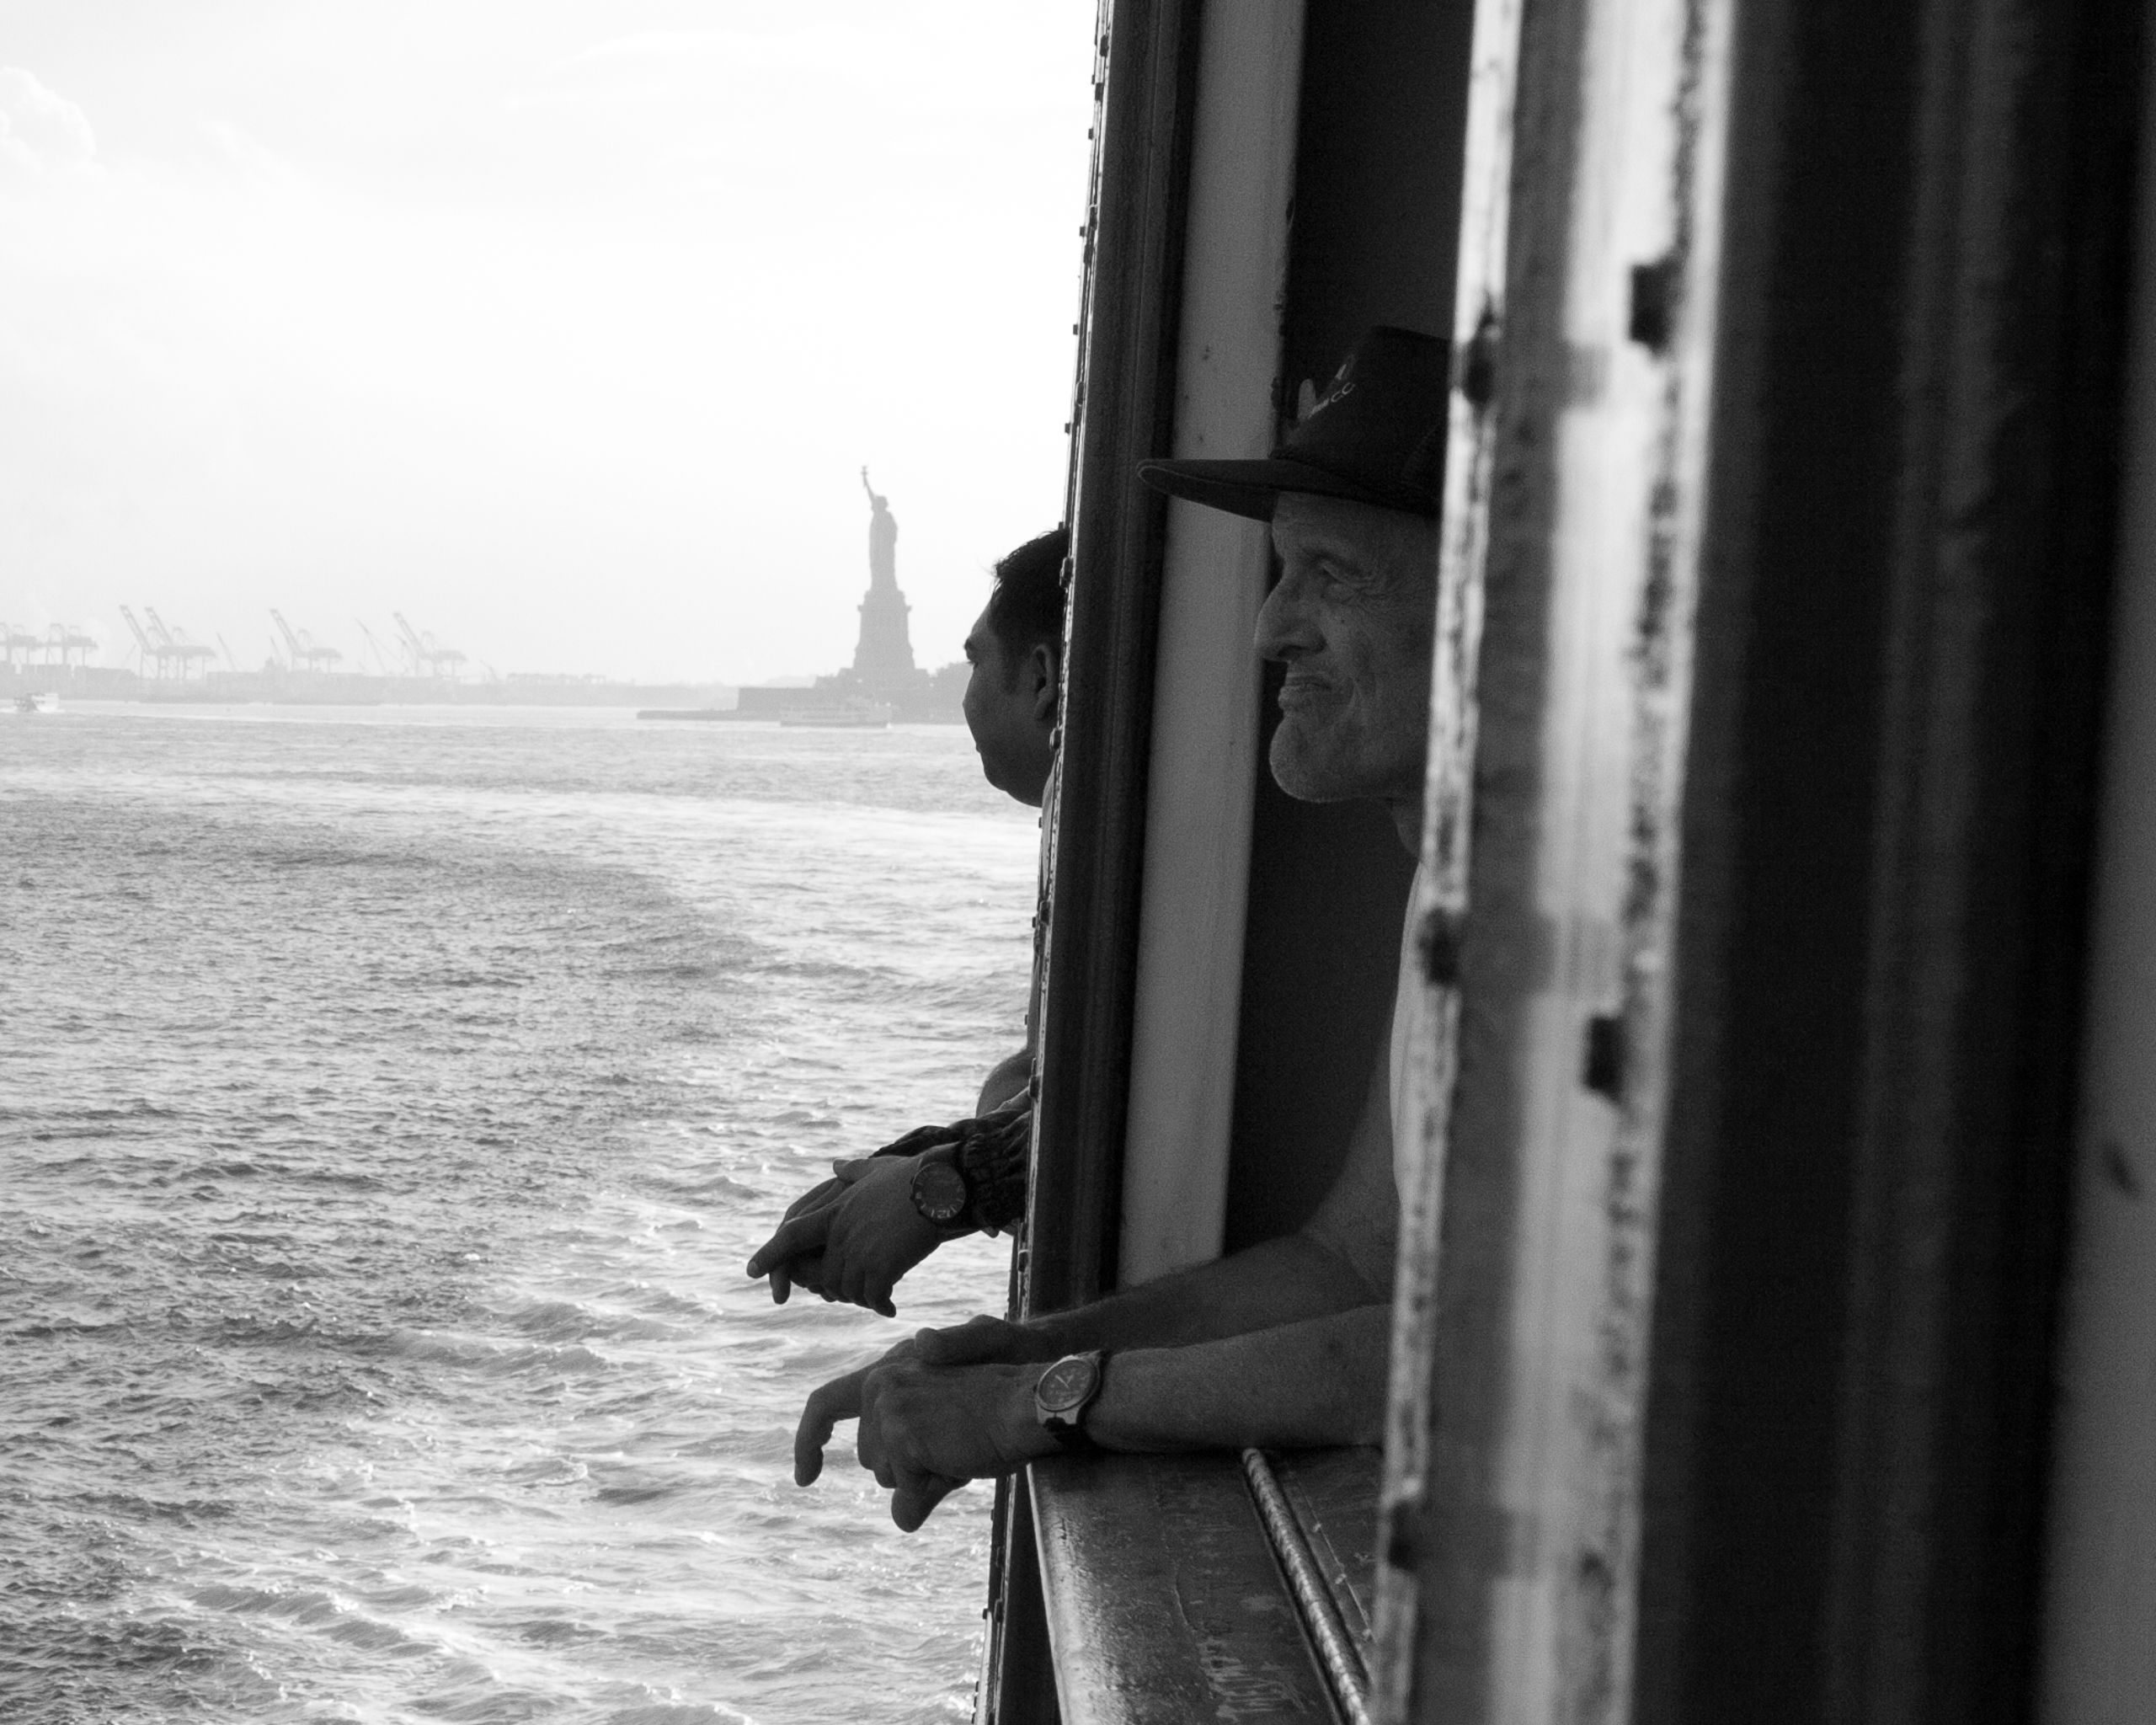 Passengers aboard the Staten Island Ferry view the waterway